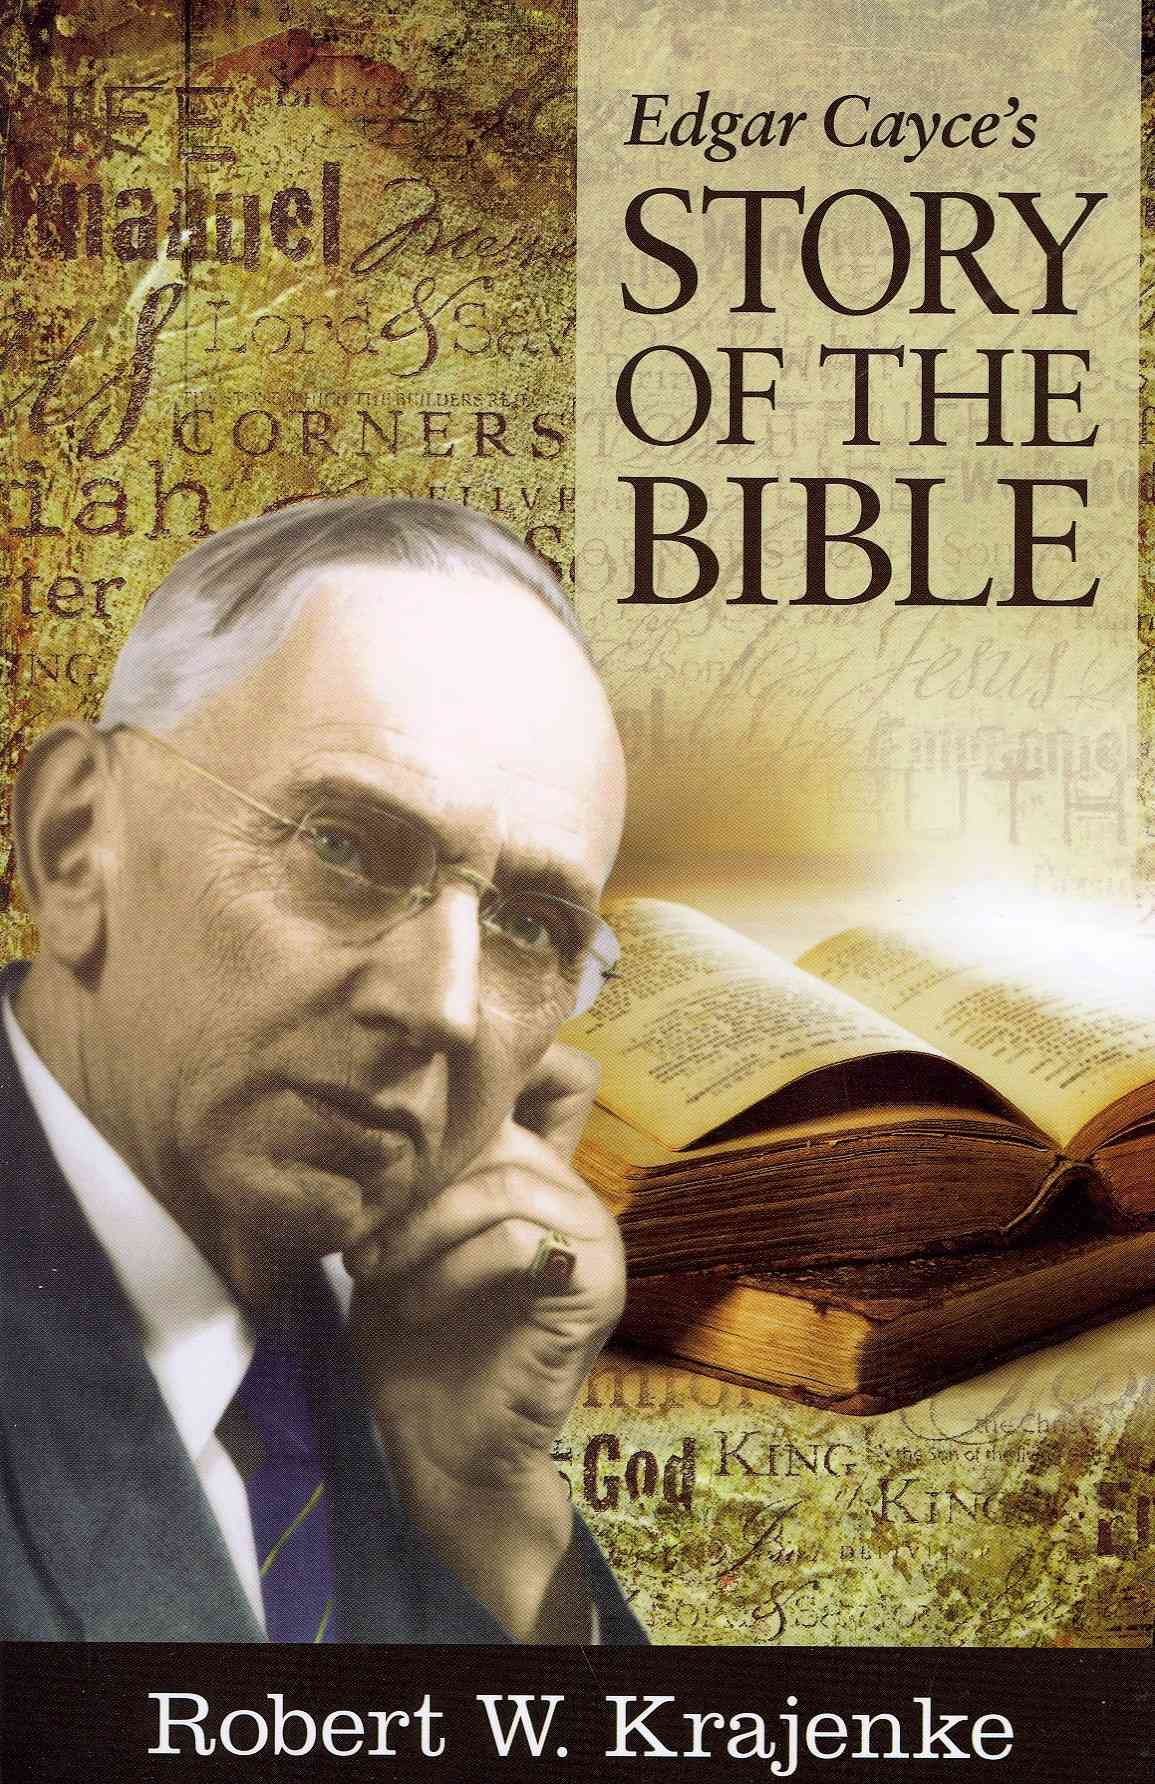 Edgar Cayce's Story of the Bible (Paperback)